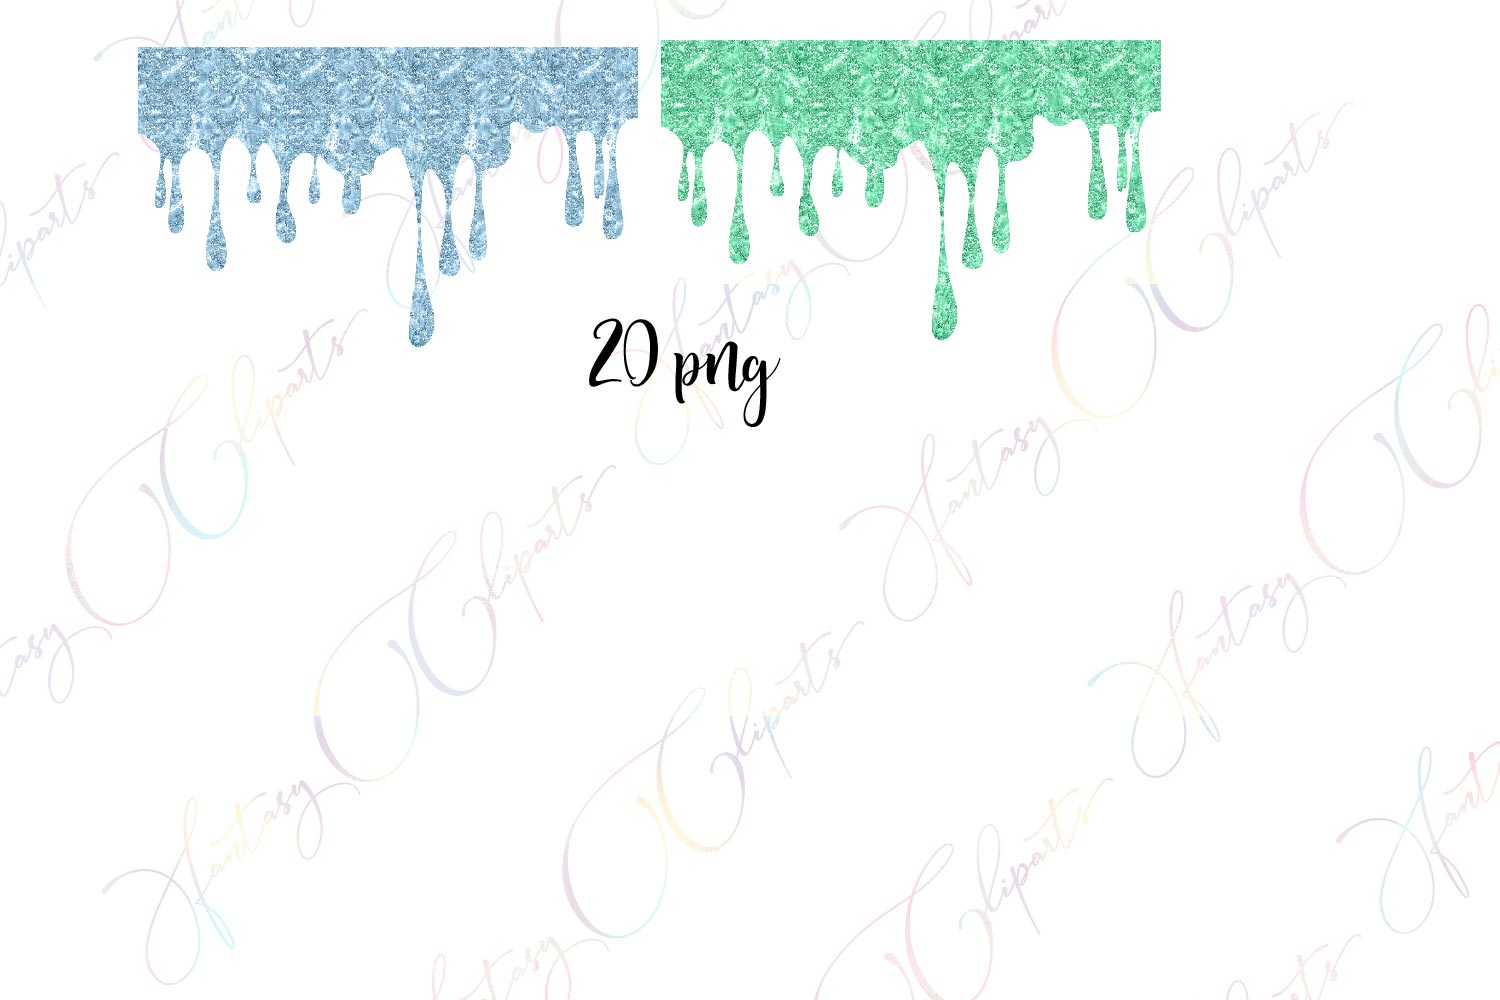 Glitter Drippings Clipart example image 4